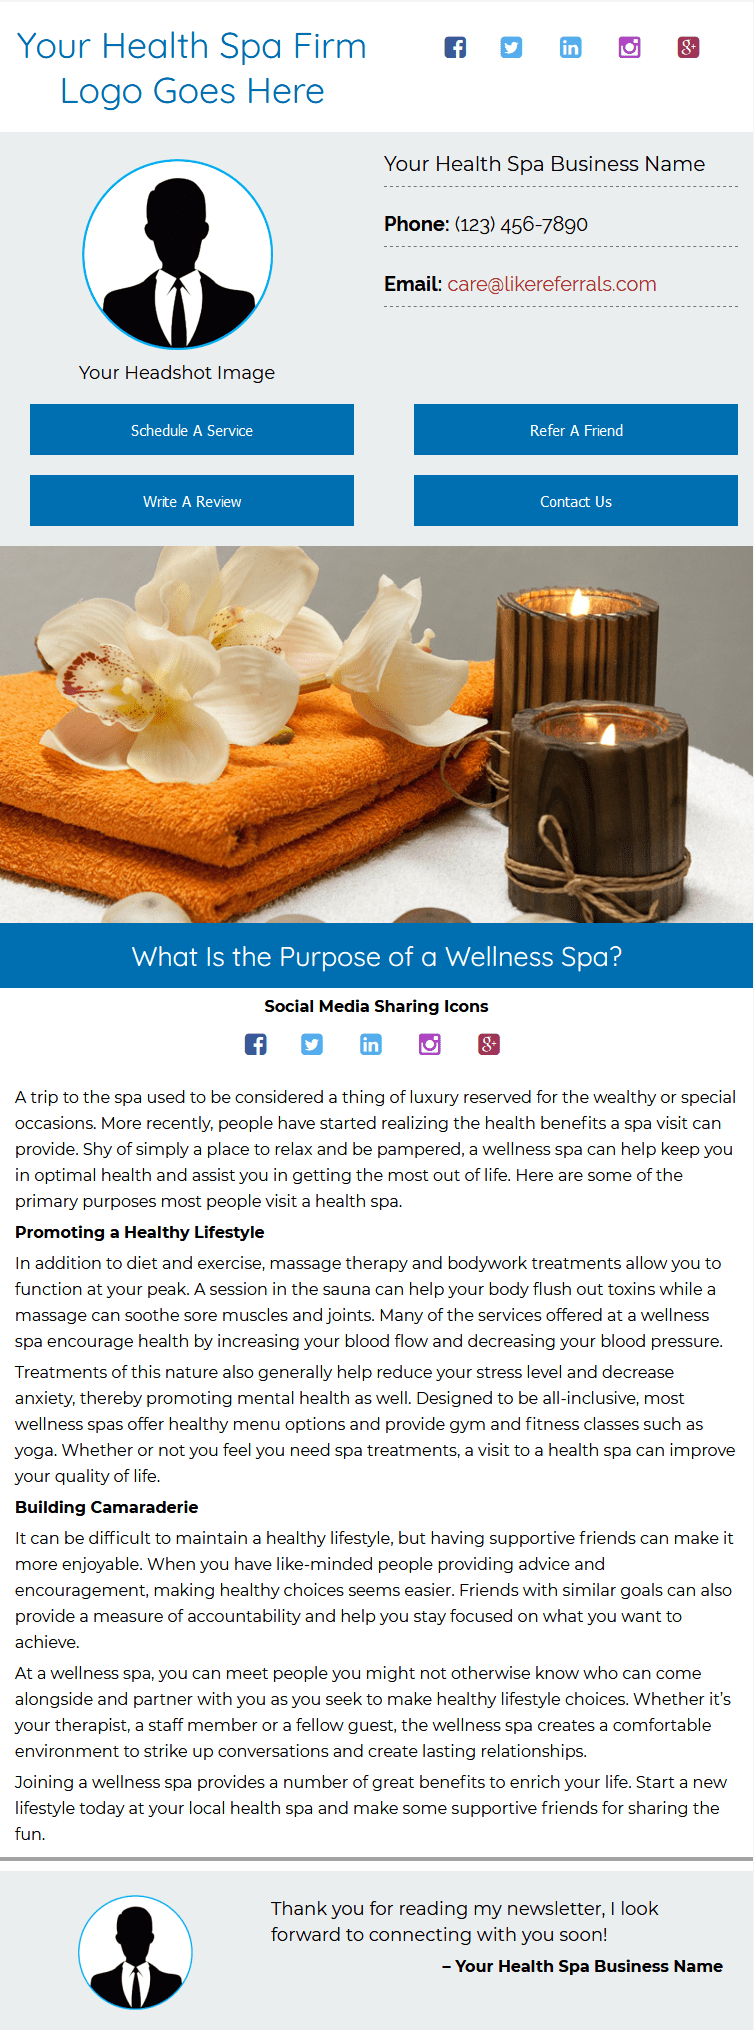 Email Newsletter Marketing Services for Health Spas